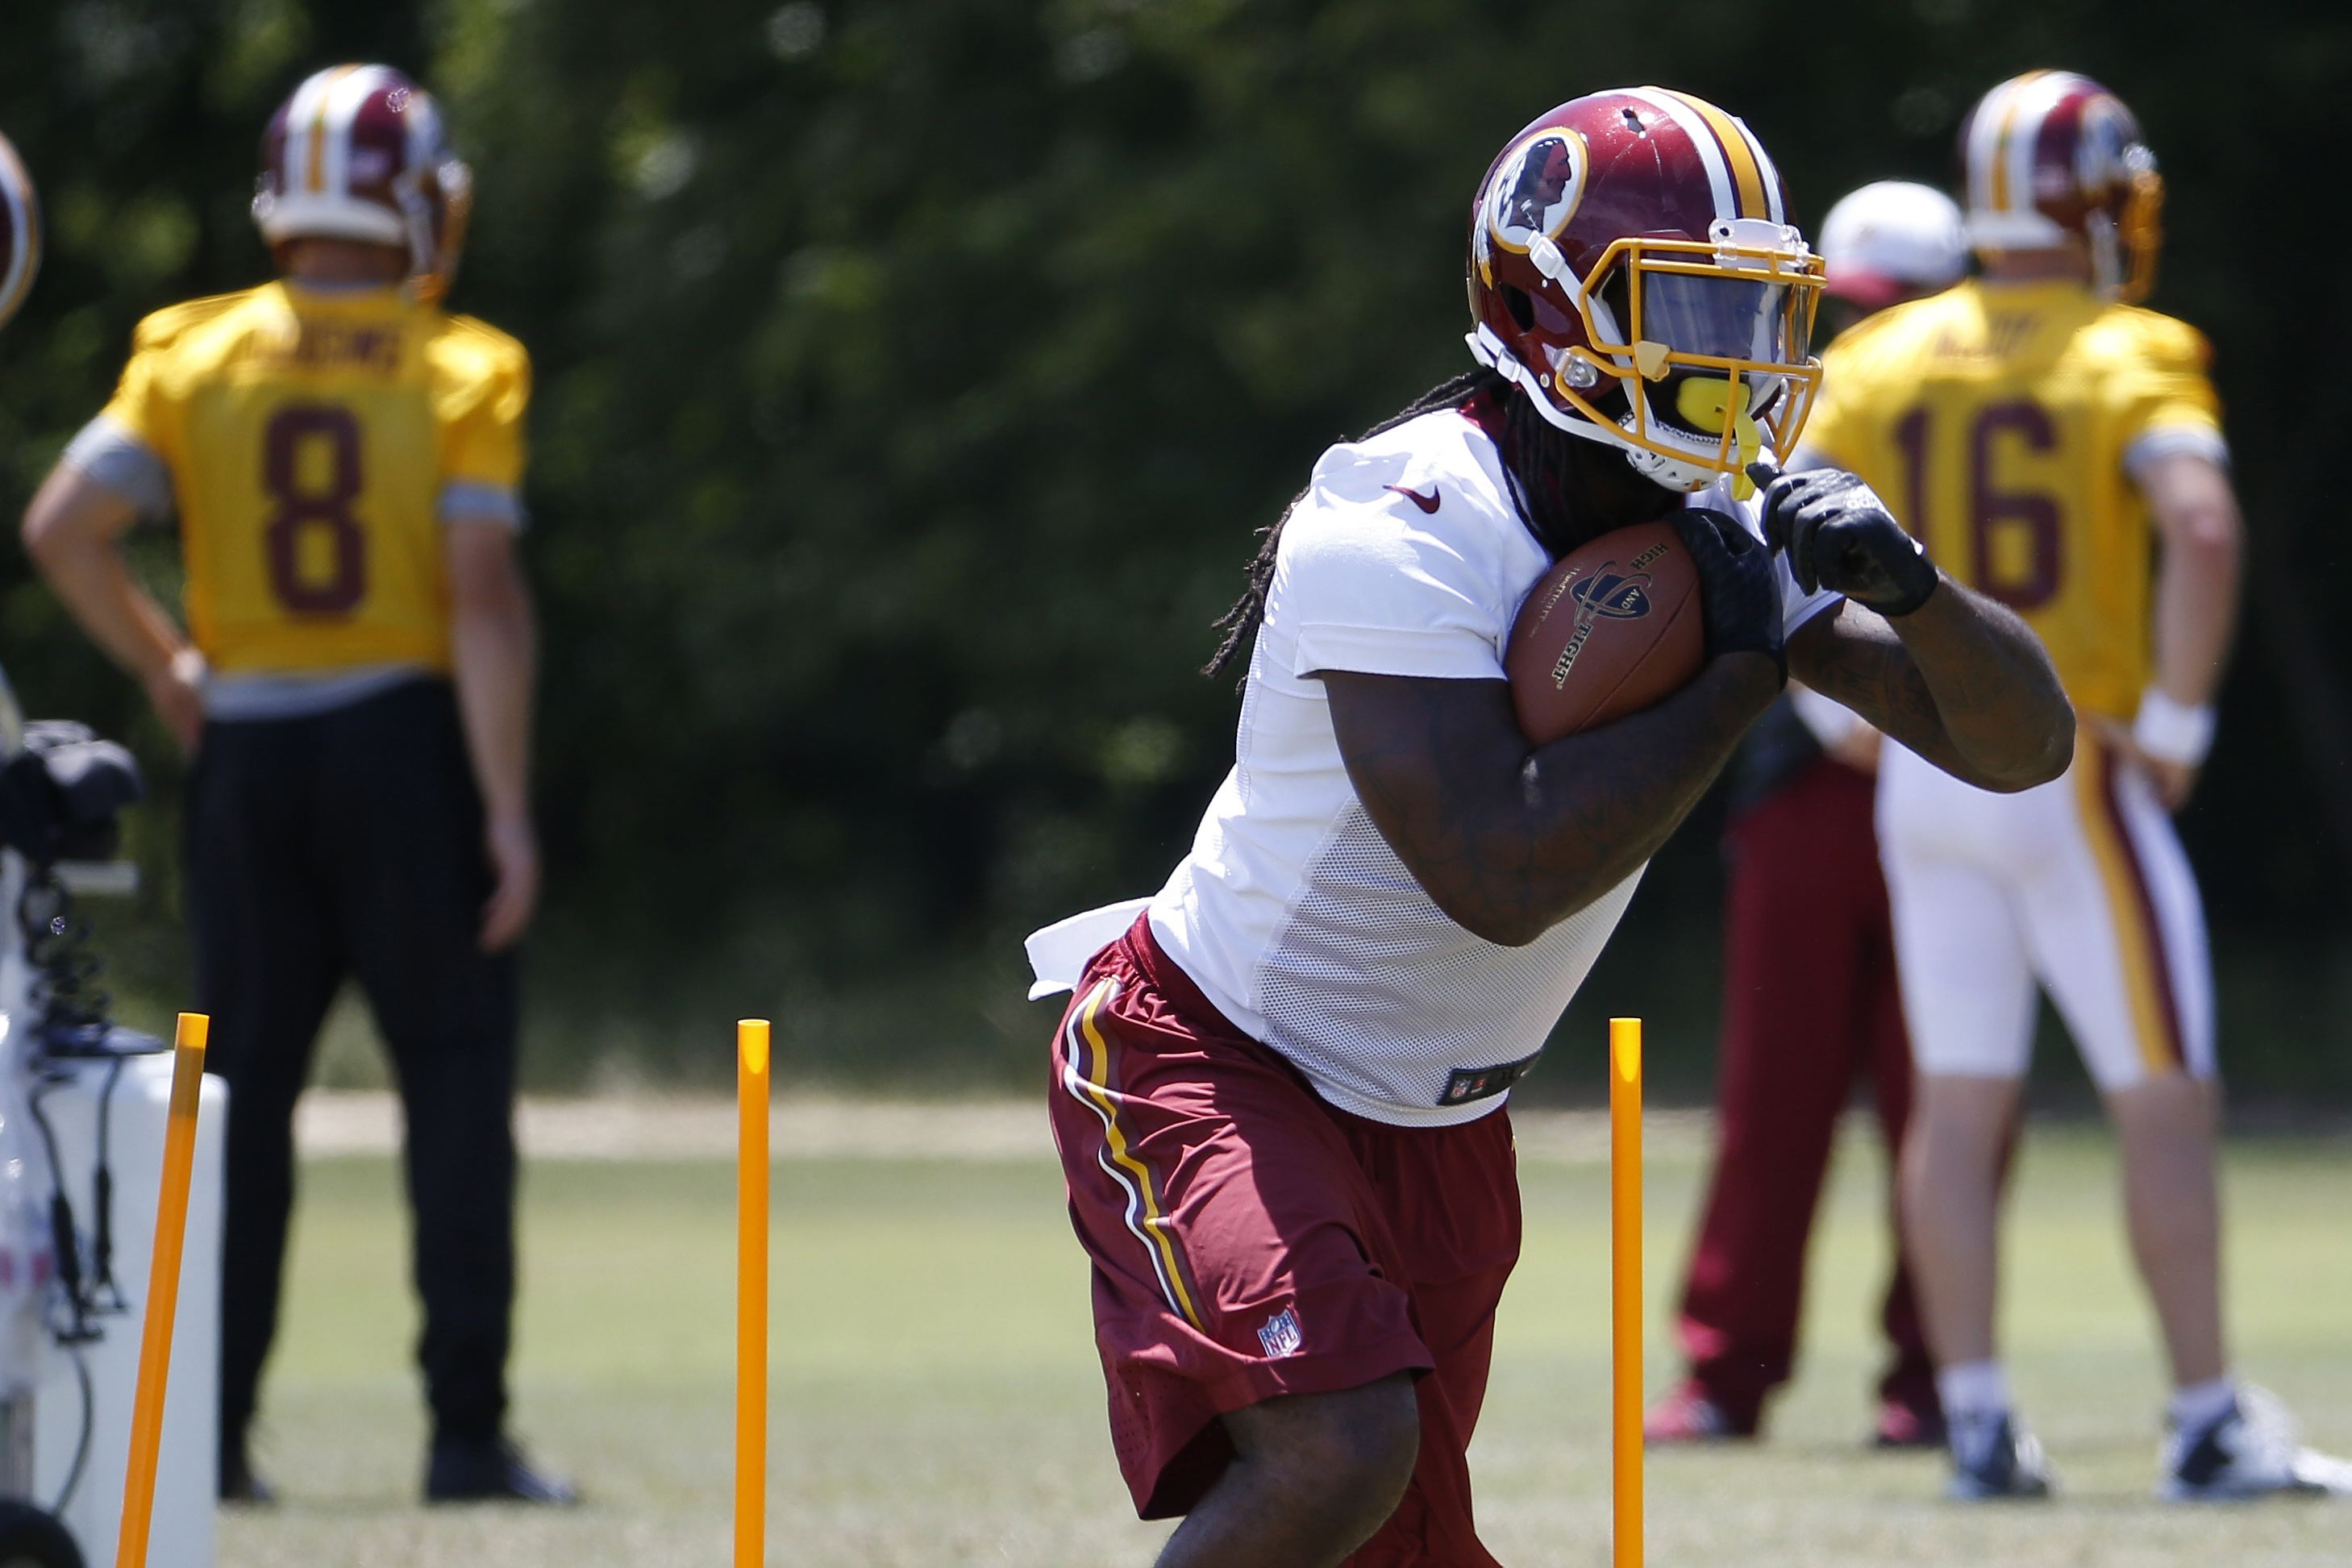 9339948-nfl-washington-redskins-minicamp